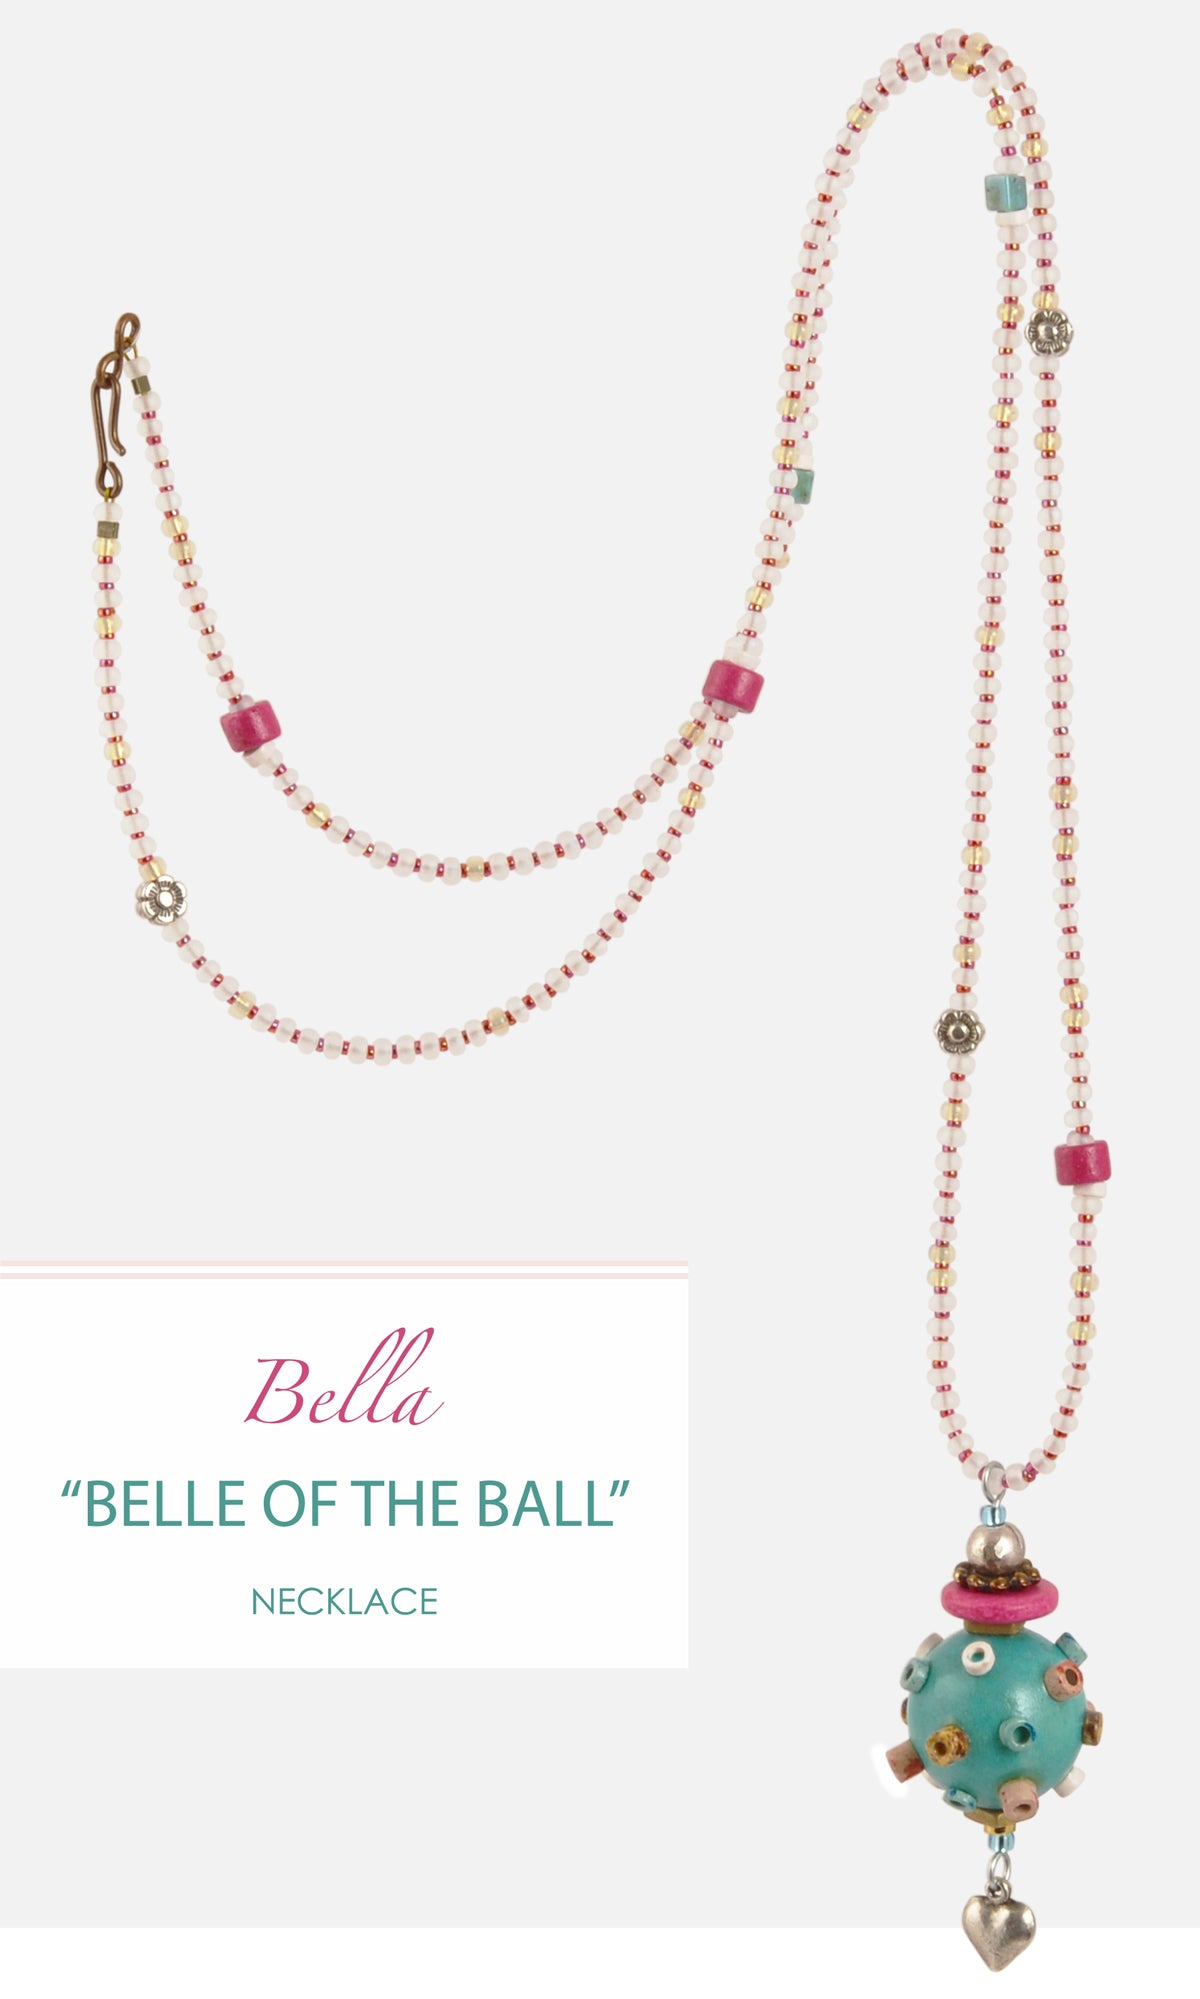 Belle of the Ball Necklace Amphora Beads